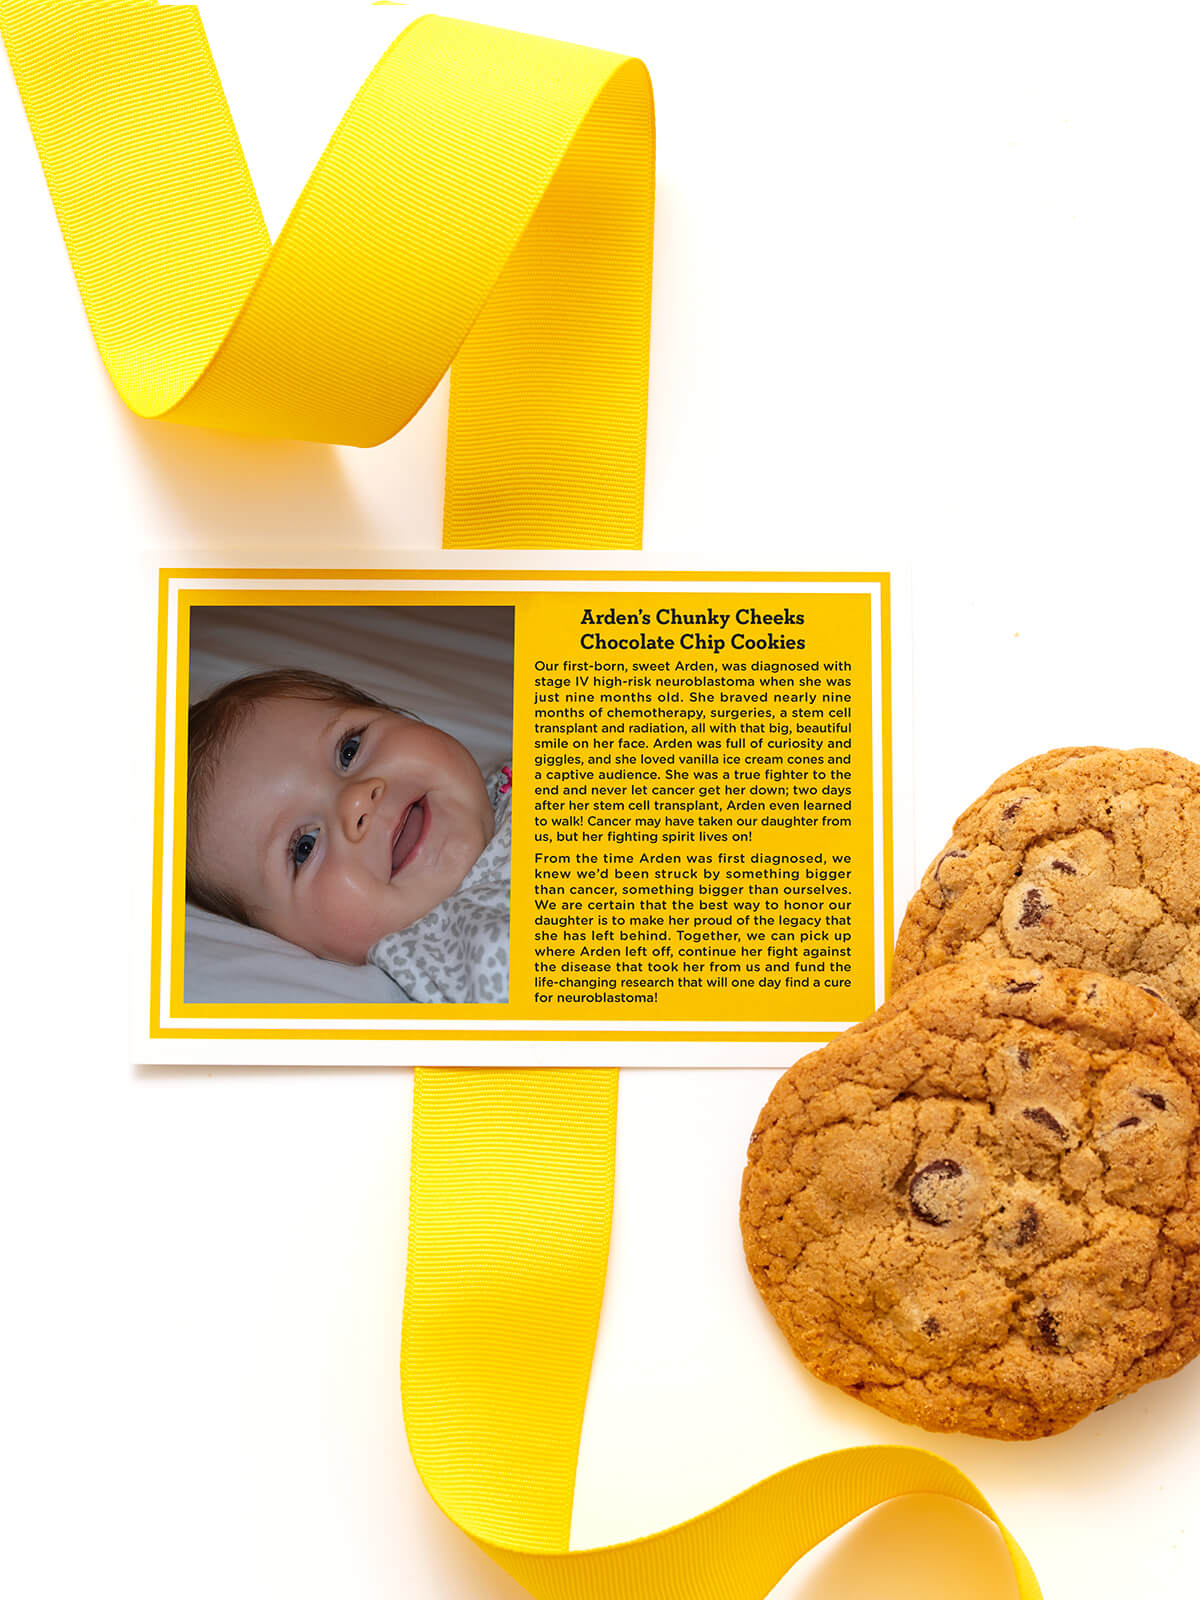 Arden's Chunky Cheeks Chocolate Chip Cookies